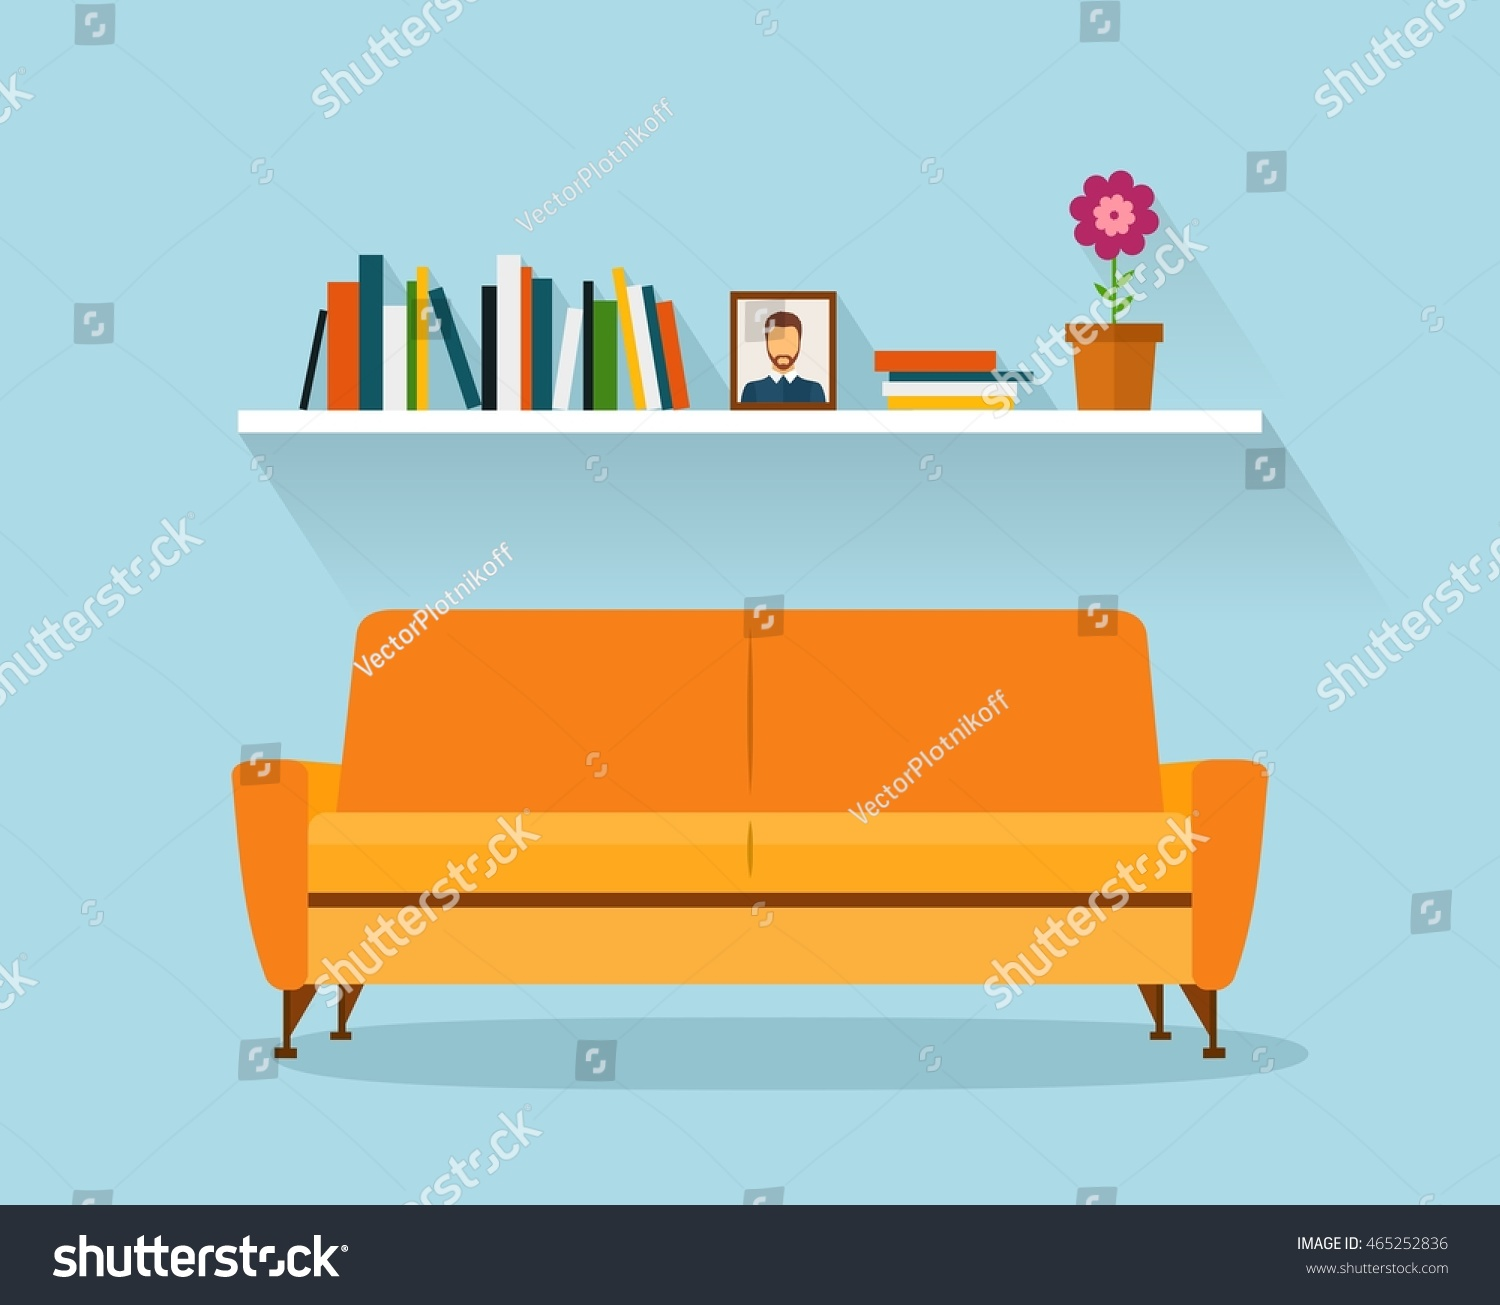 Modern Design Interior Orange Sofa Bookshelves Stock Vector